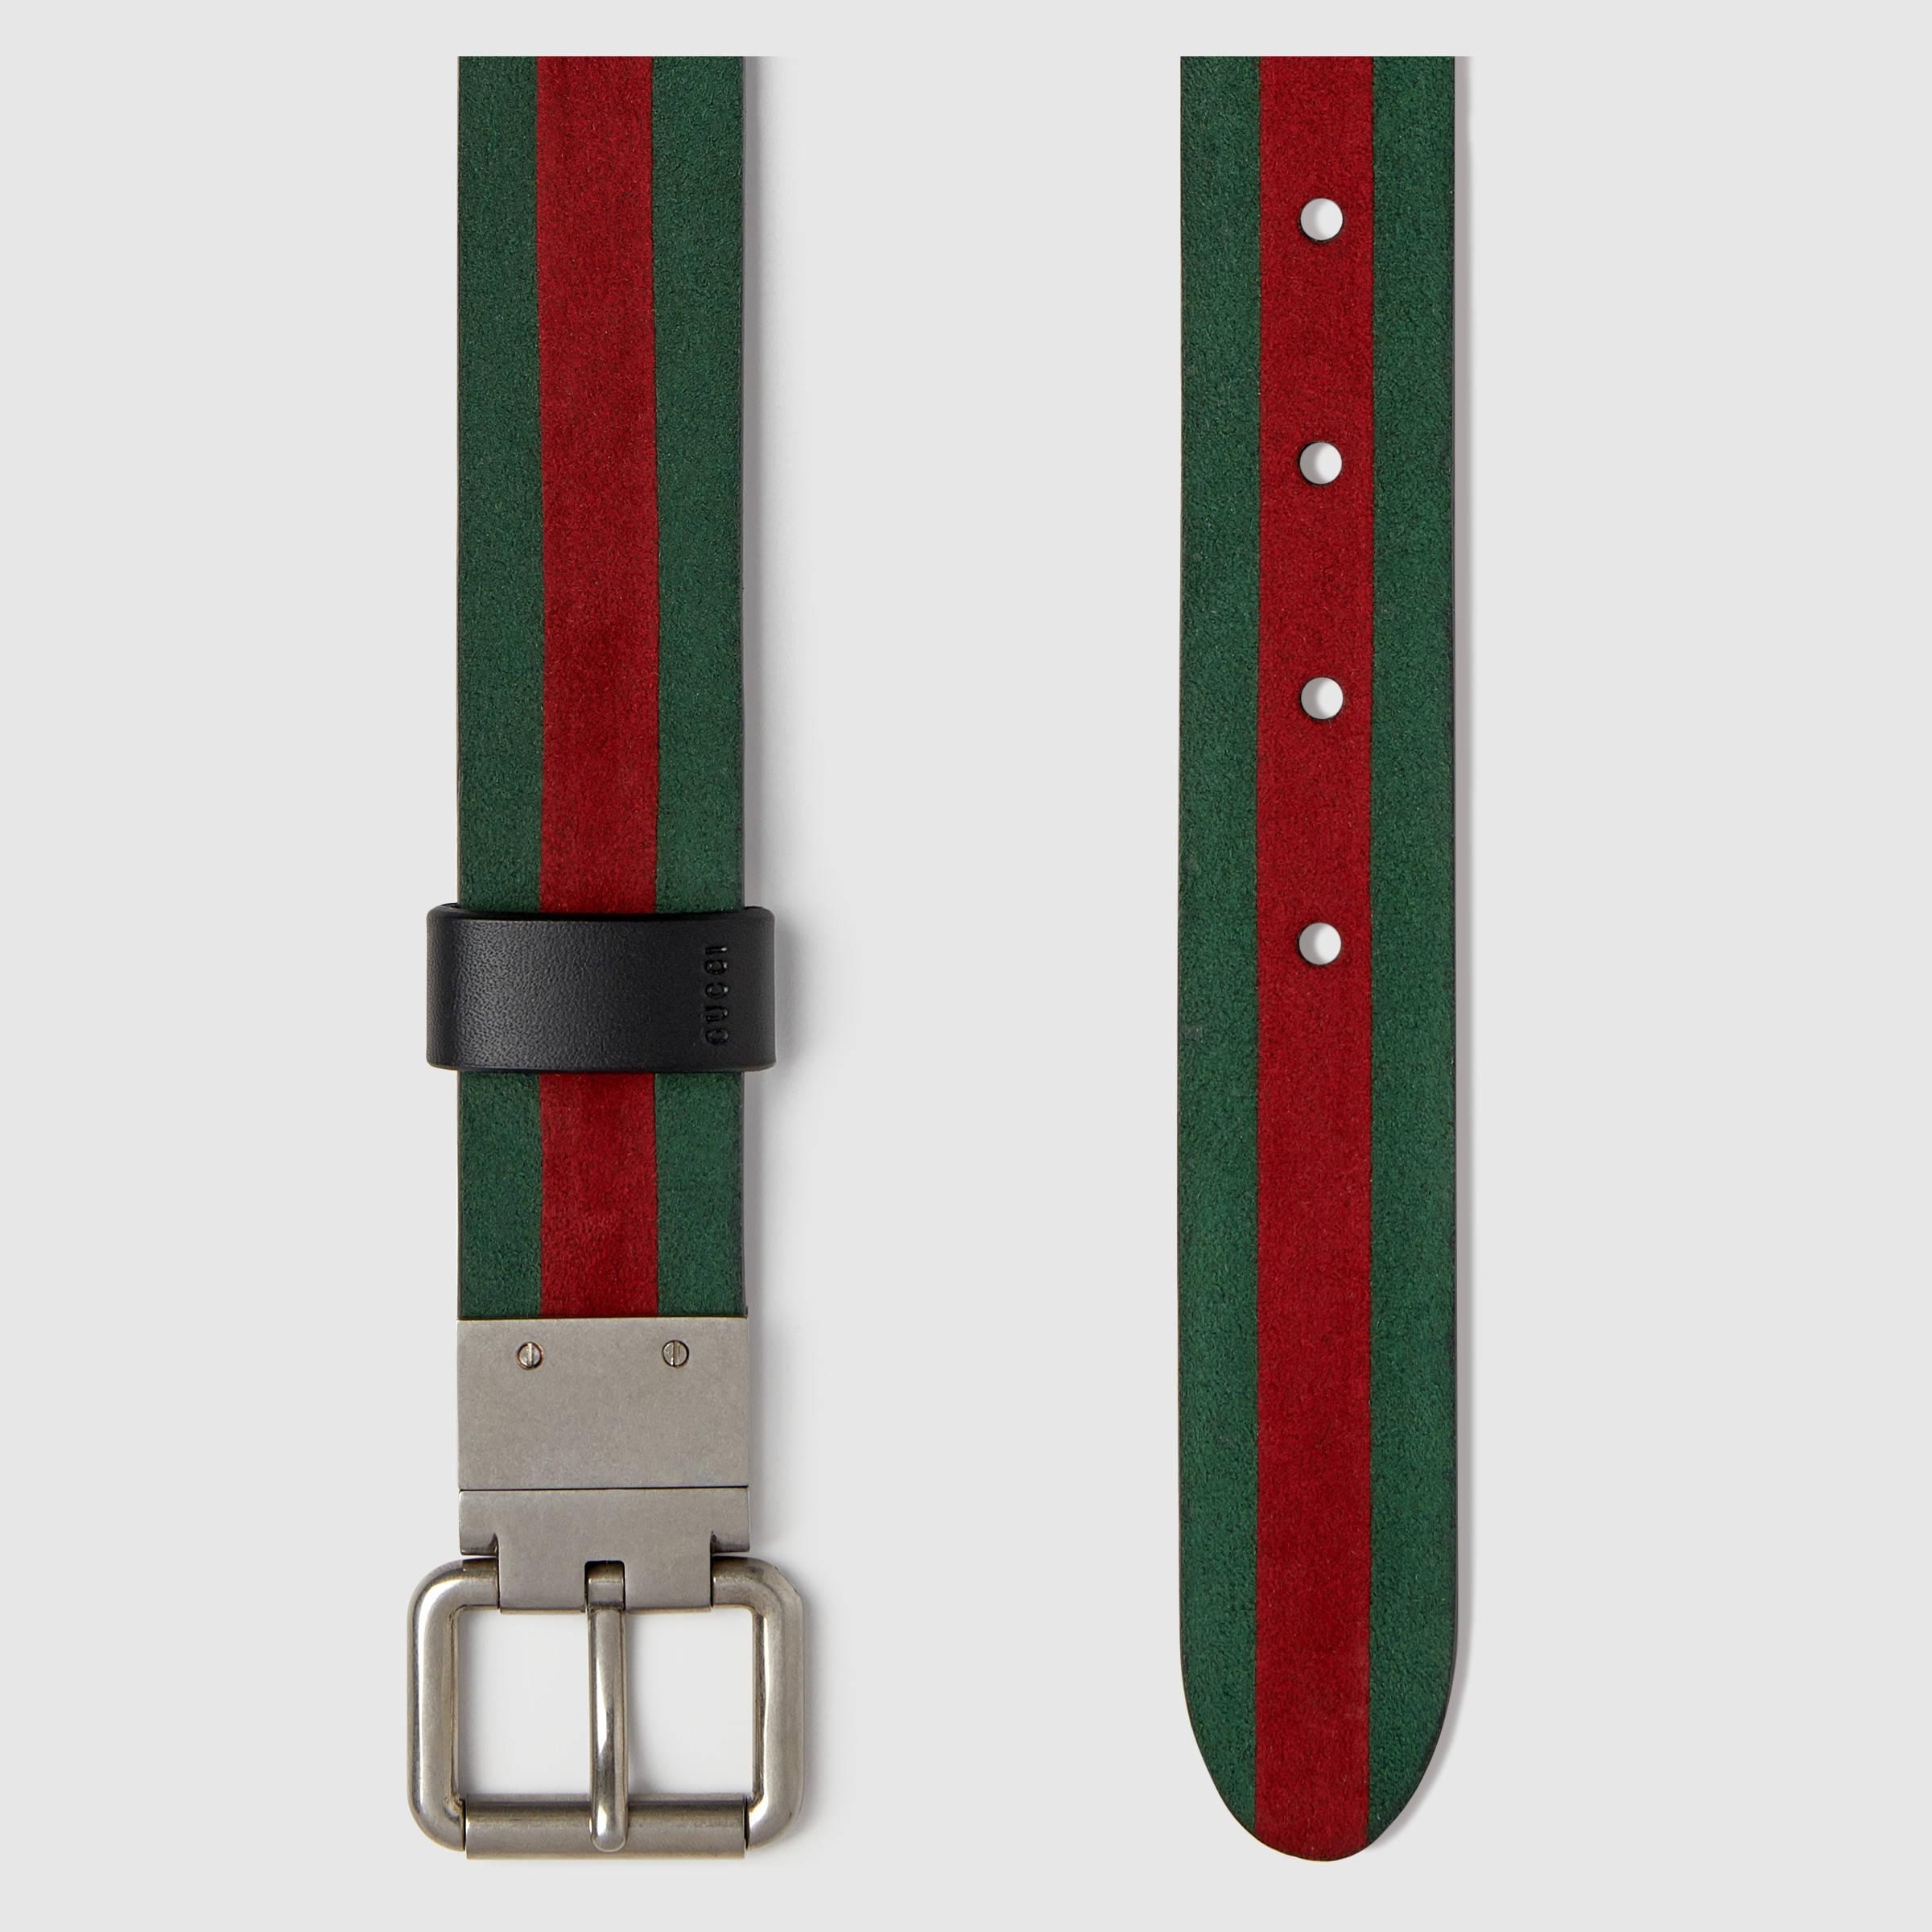 4ee26e9c2b0 Lyst - Gucci Reversible Leather And Web Belt in Black for Men